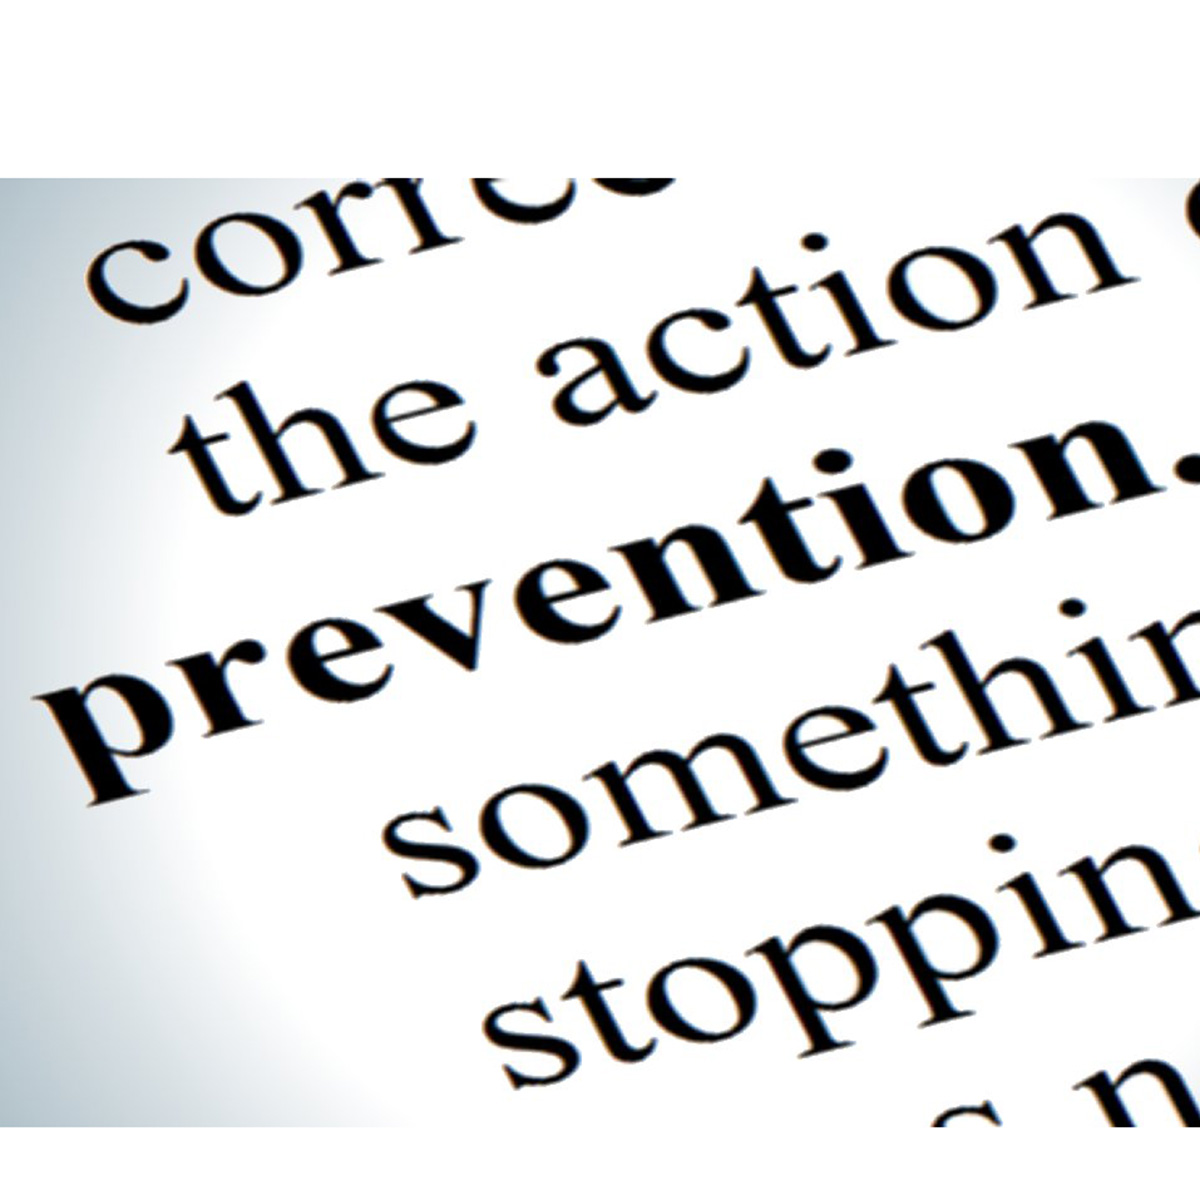 Text on a page with the word prevention bolded. JOB STRESS PREVENTION Effective interventions focus on prevention, while also addressing stress-related illnesses.